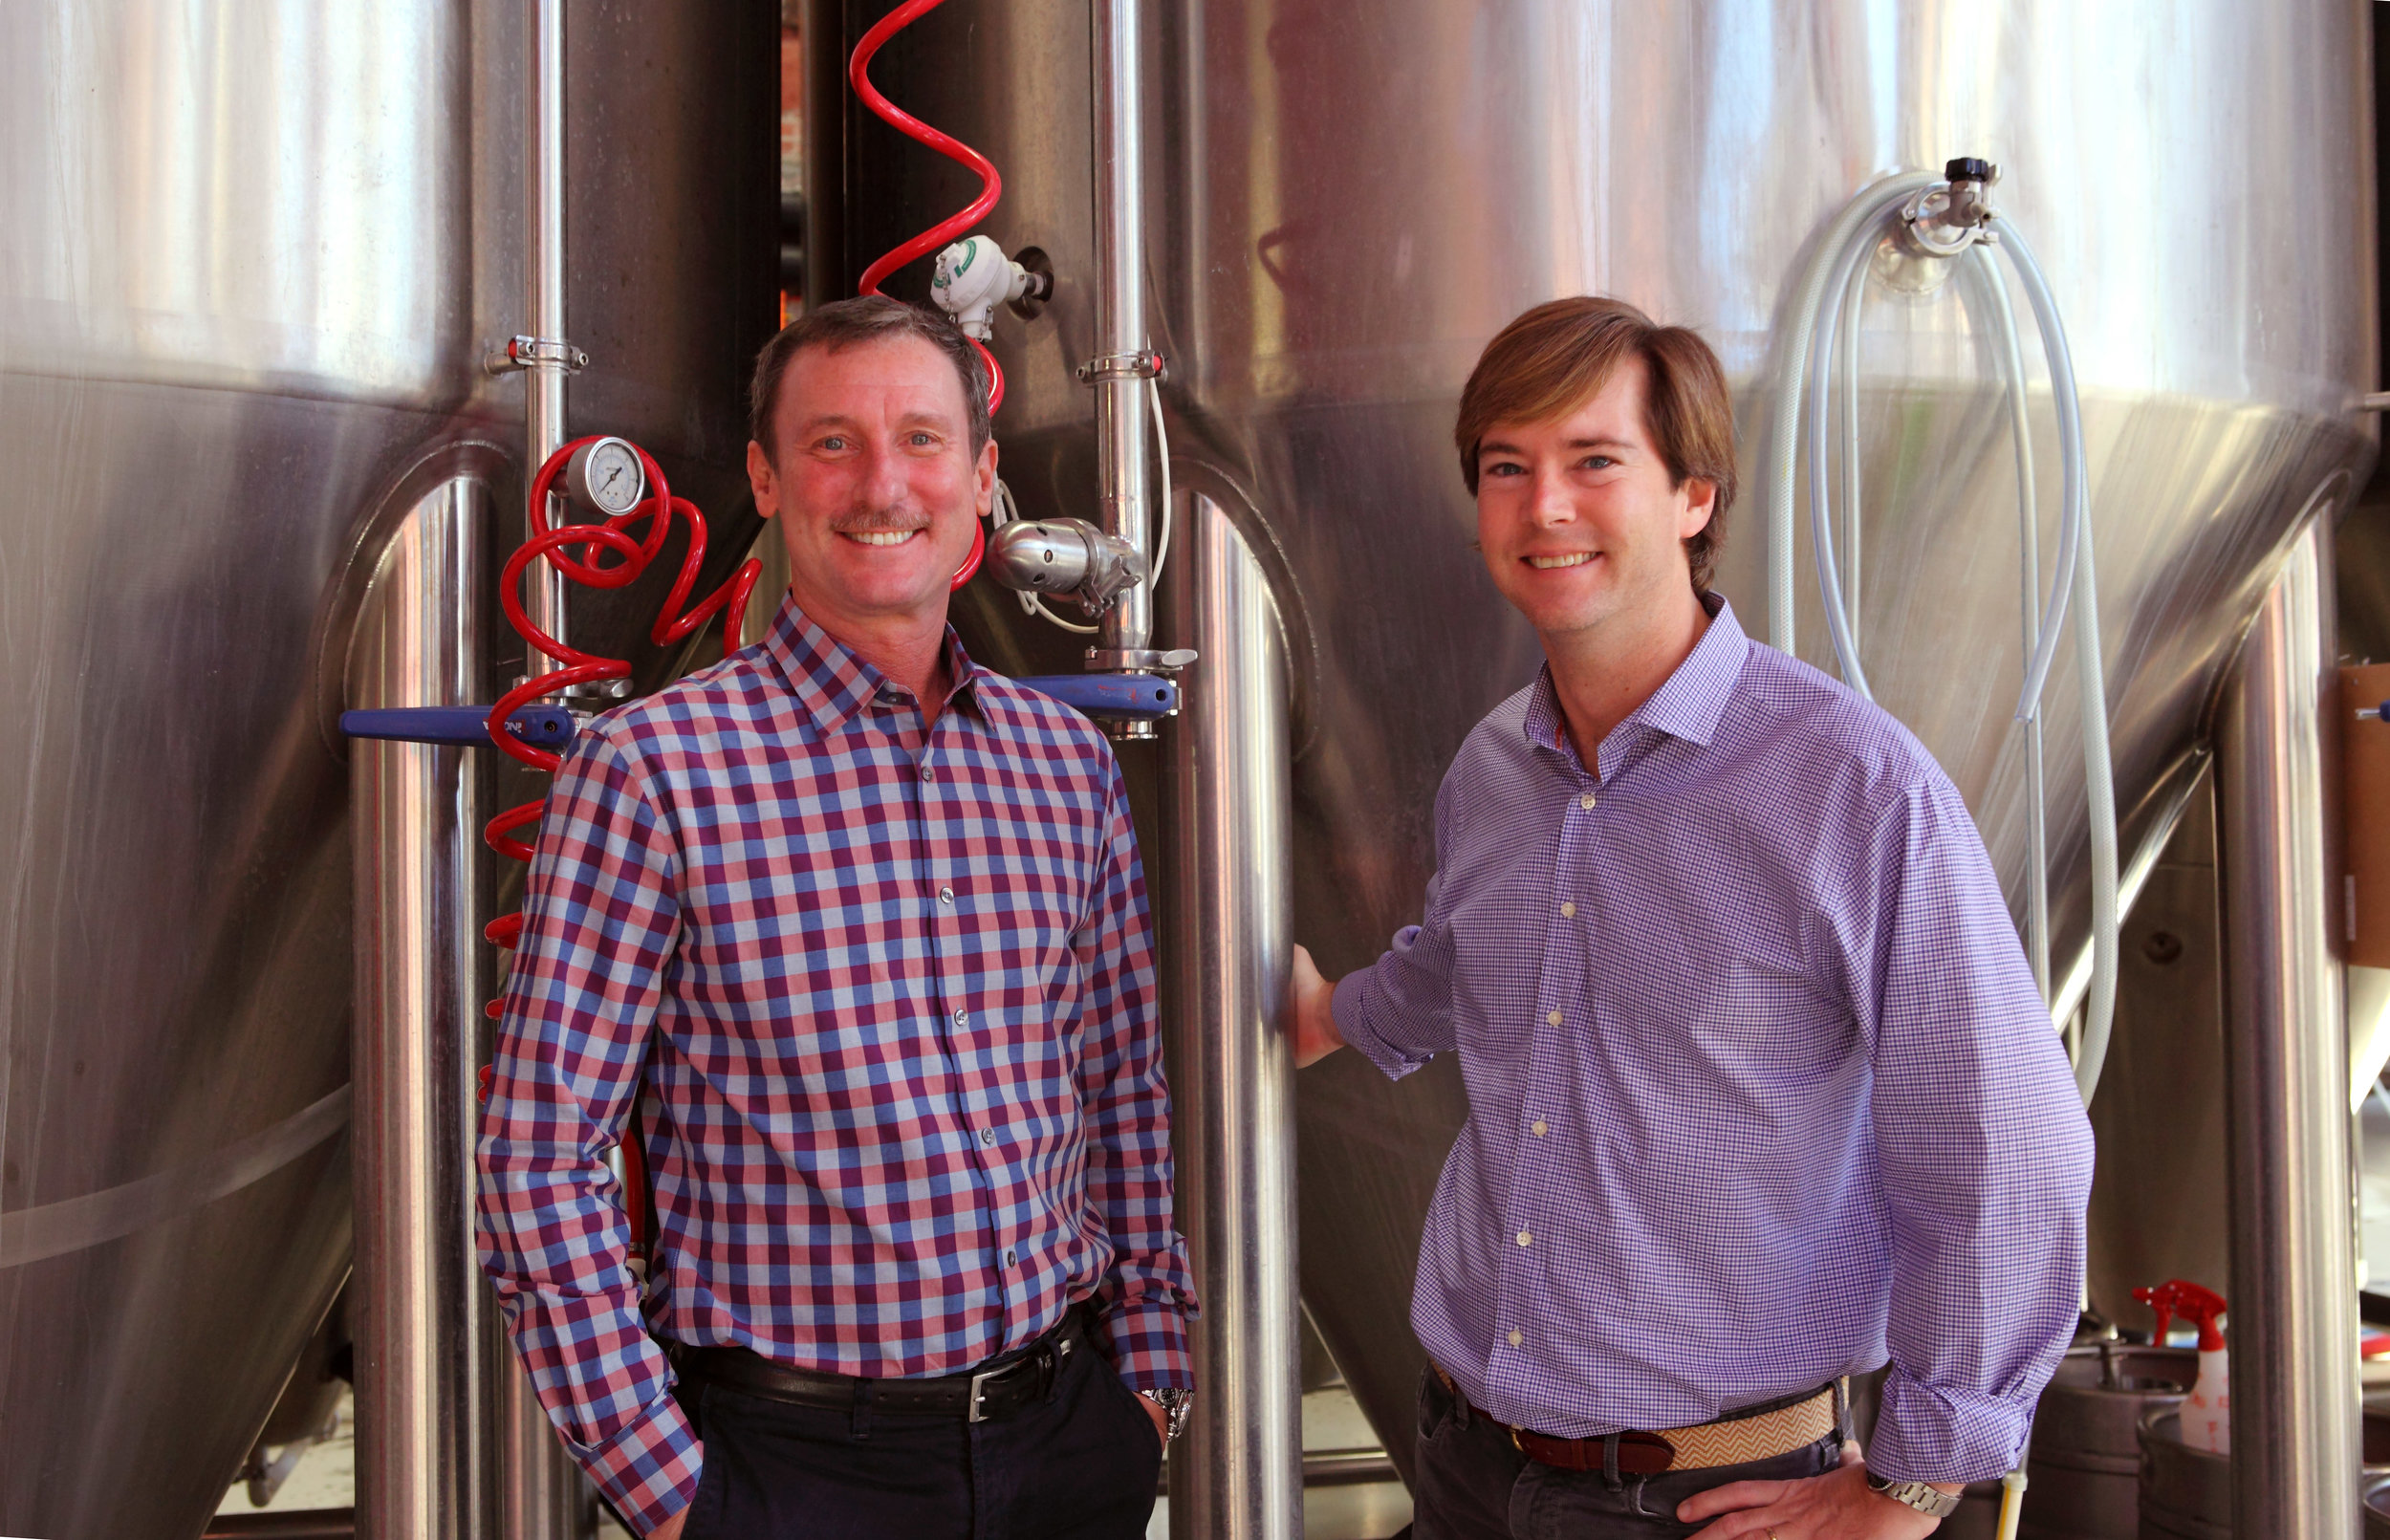 Stephen Hill, left, and Trent Mooring are the owners of Mother Earth Brewery, opening it in 2009. Hill was the recipient of the Esse Quam Videri Award by Visit North Carolina. Submitted photo